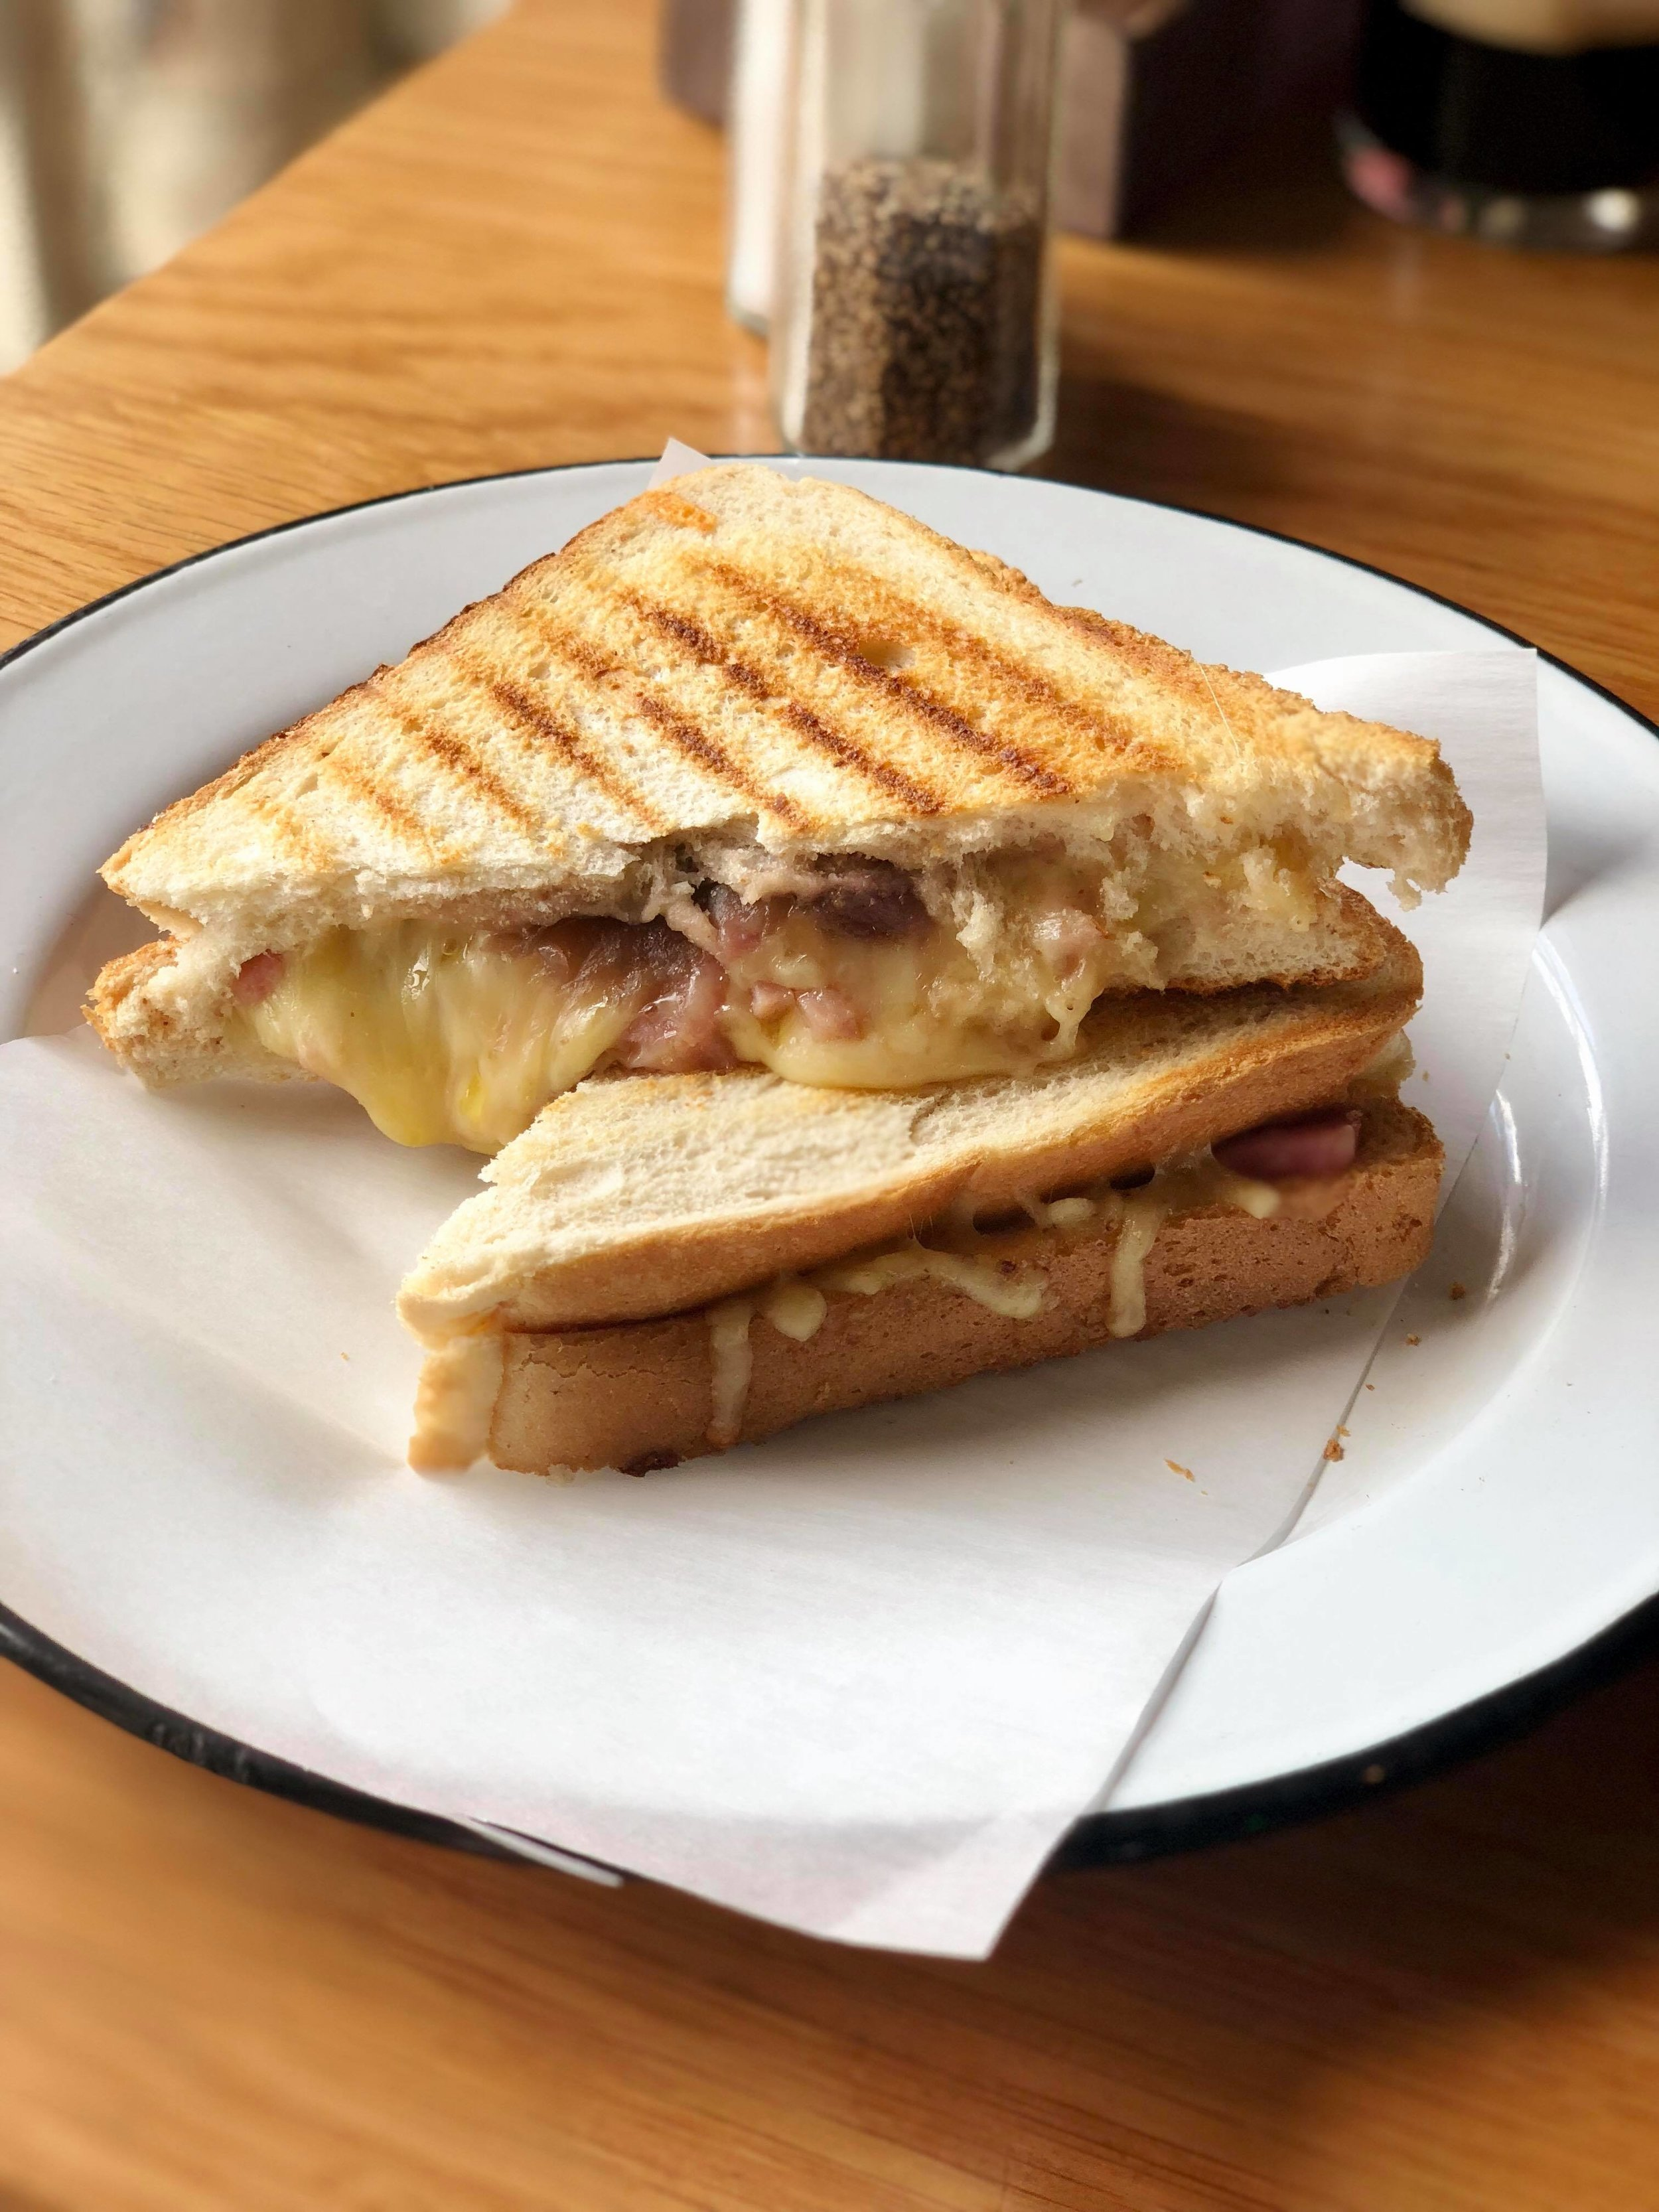 - Unbelievably satisfying grilled patty melt with layers of melted cheese, bits of Irish ham, and Guinness infused caramelized onions. Maybe it was the beer, or maybe it was just that good.